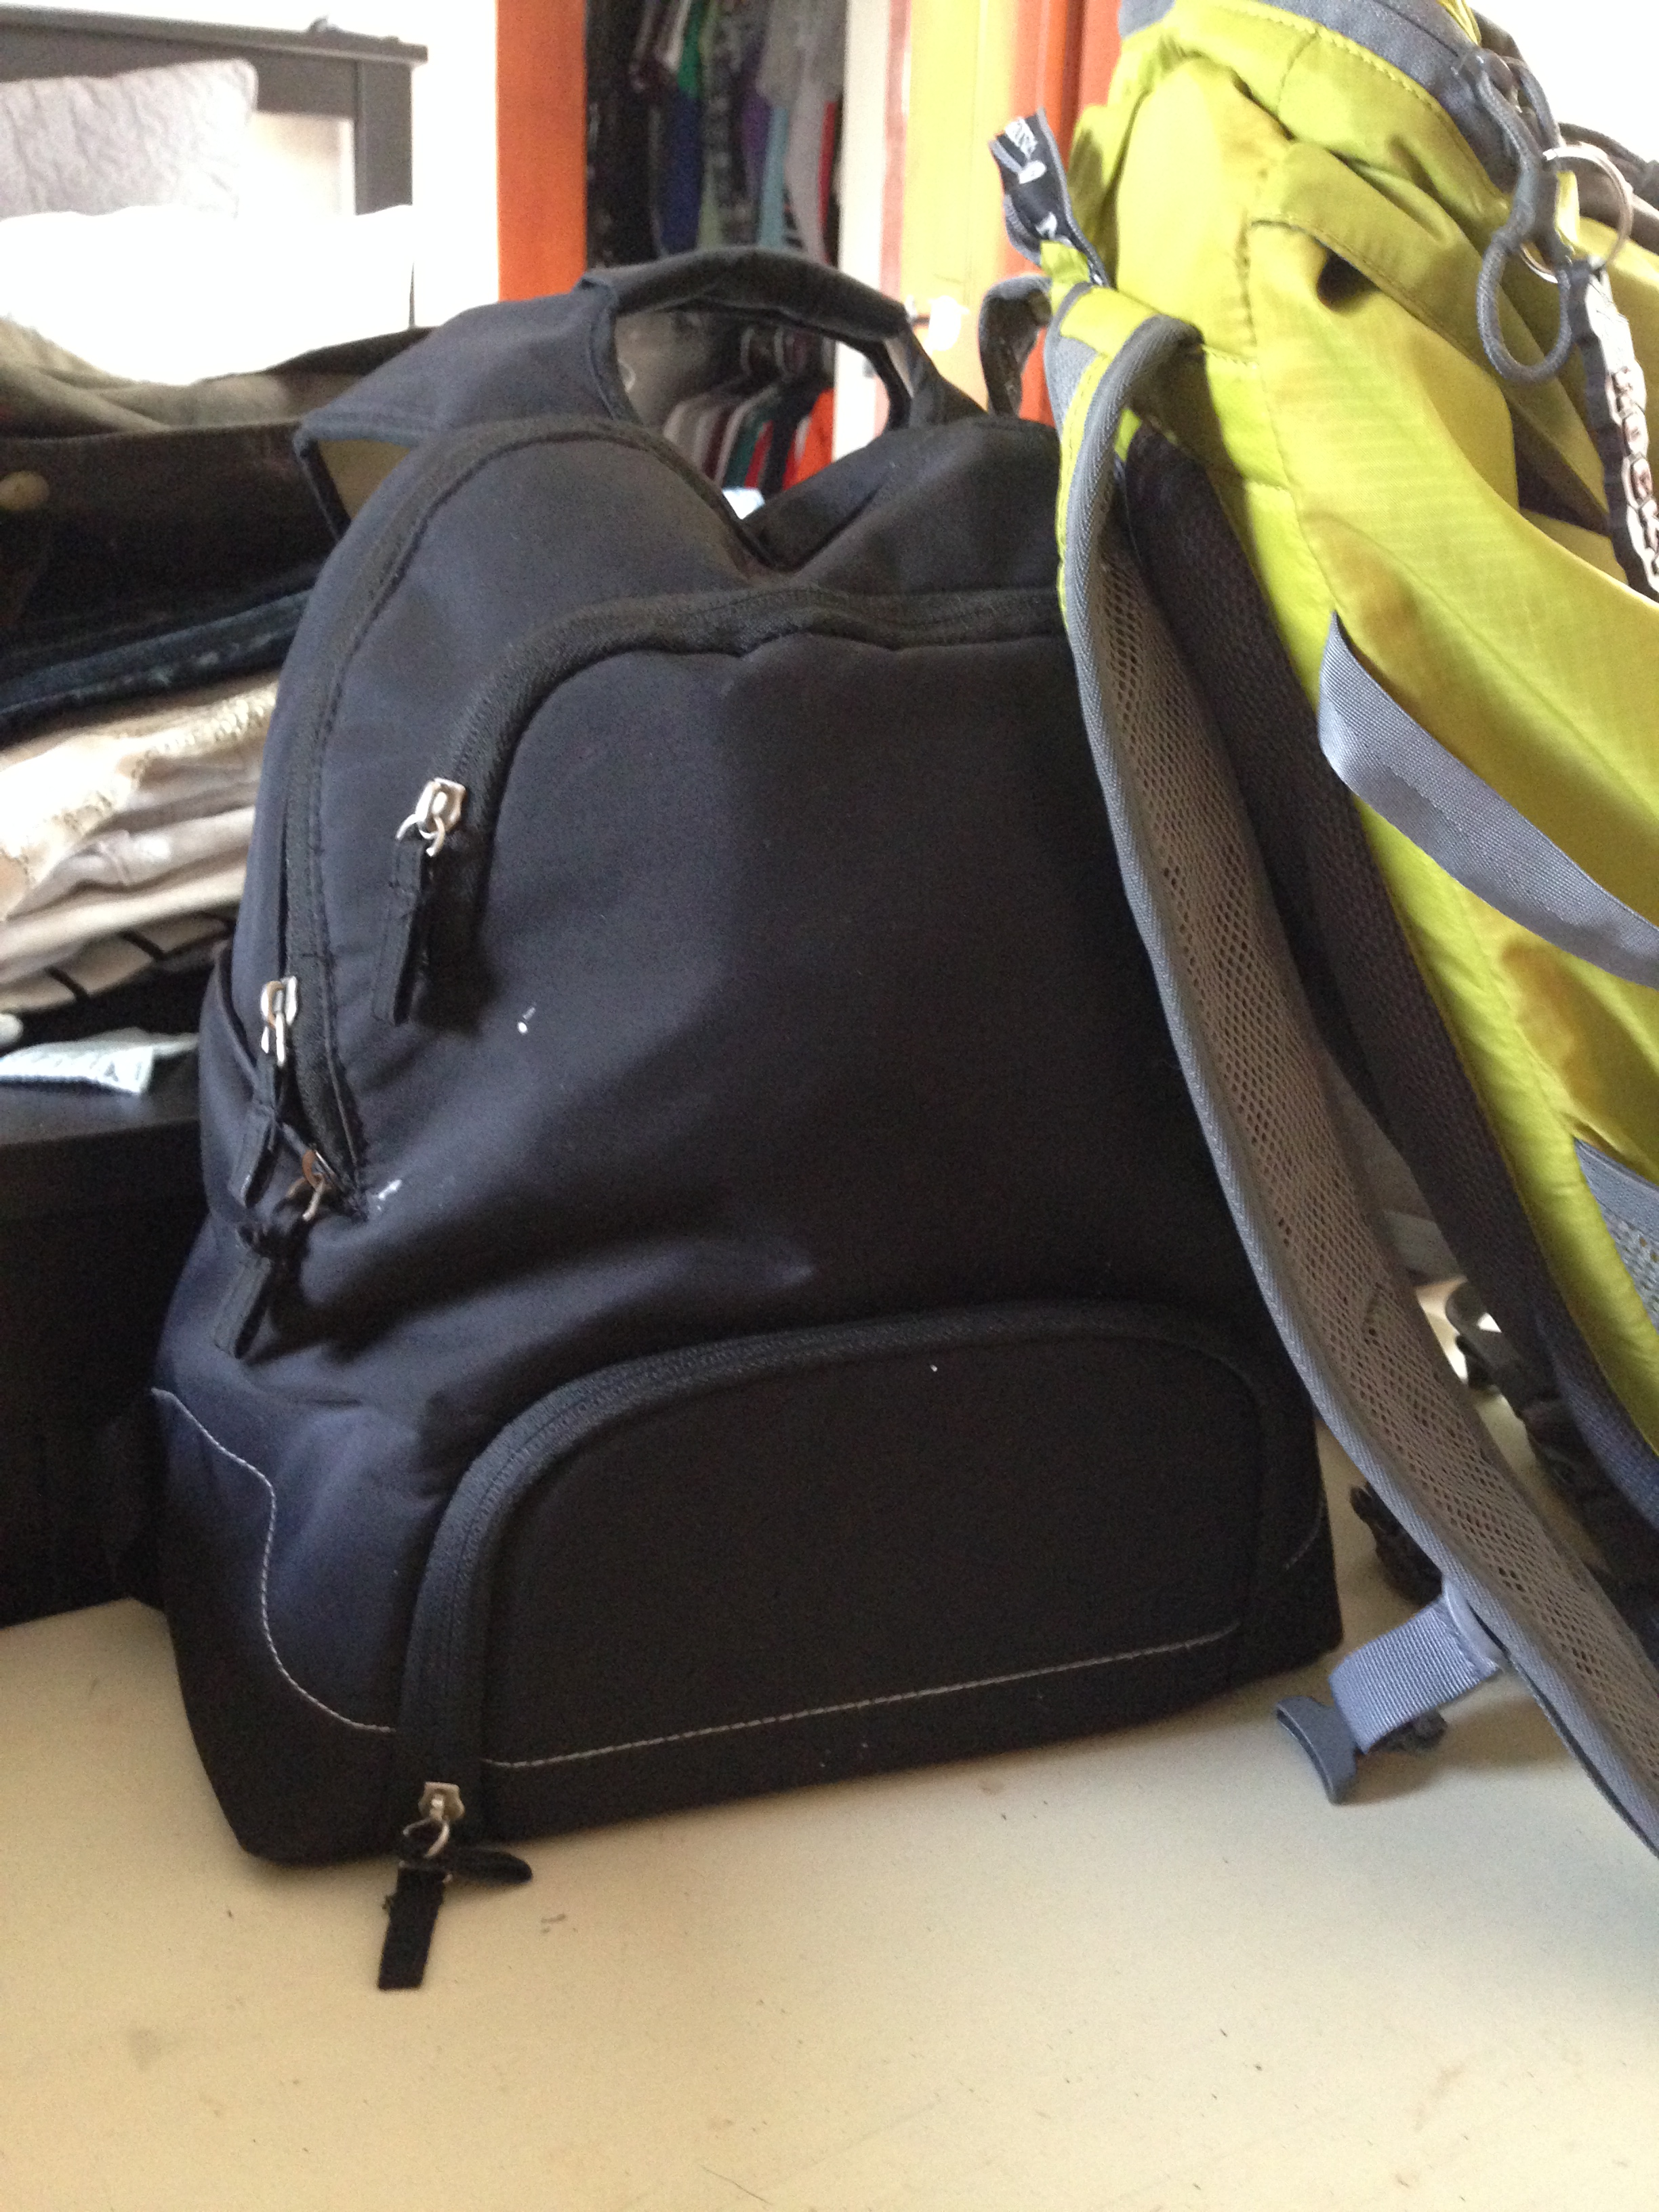 Air Travel With an [Almost] 1 Year Old: Part 1, Packing Light Ideas